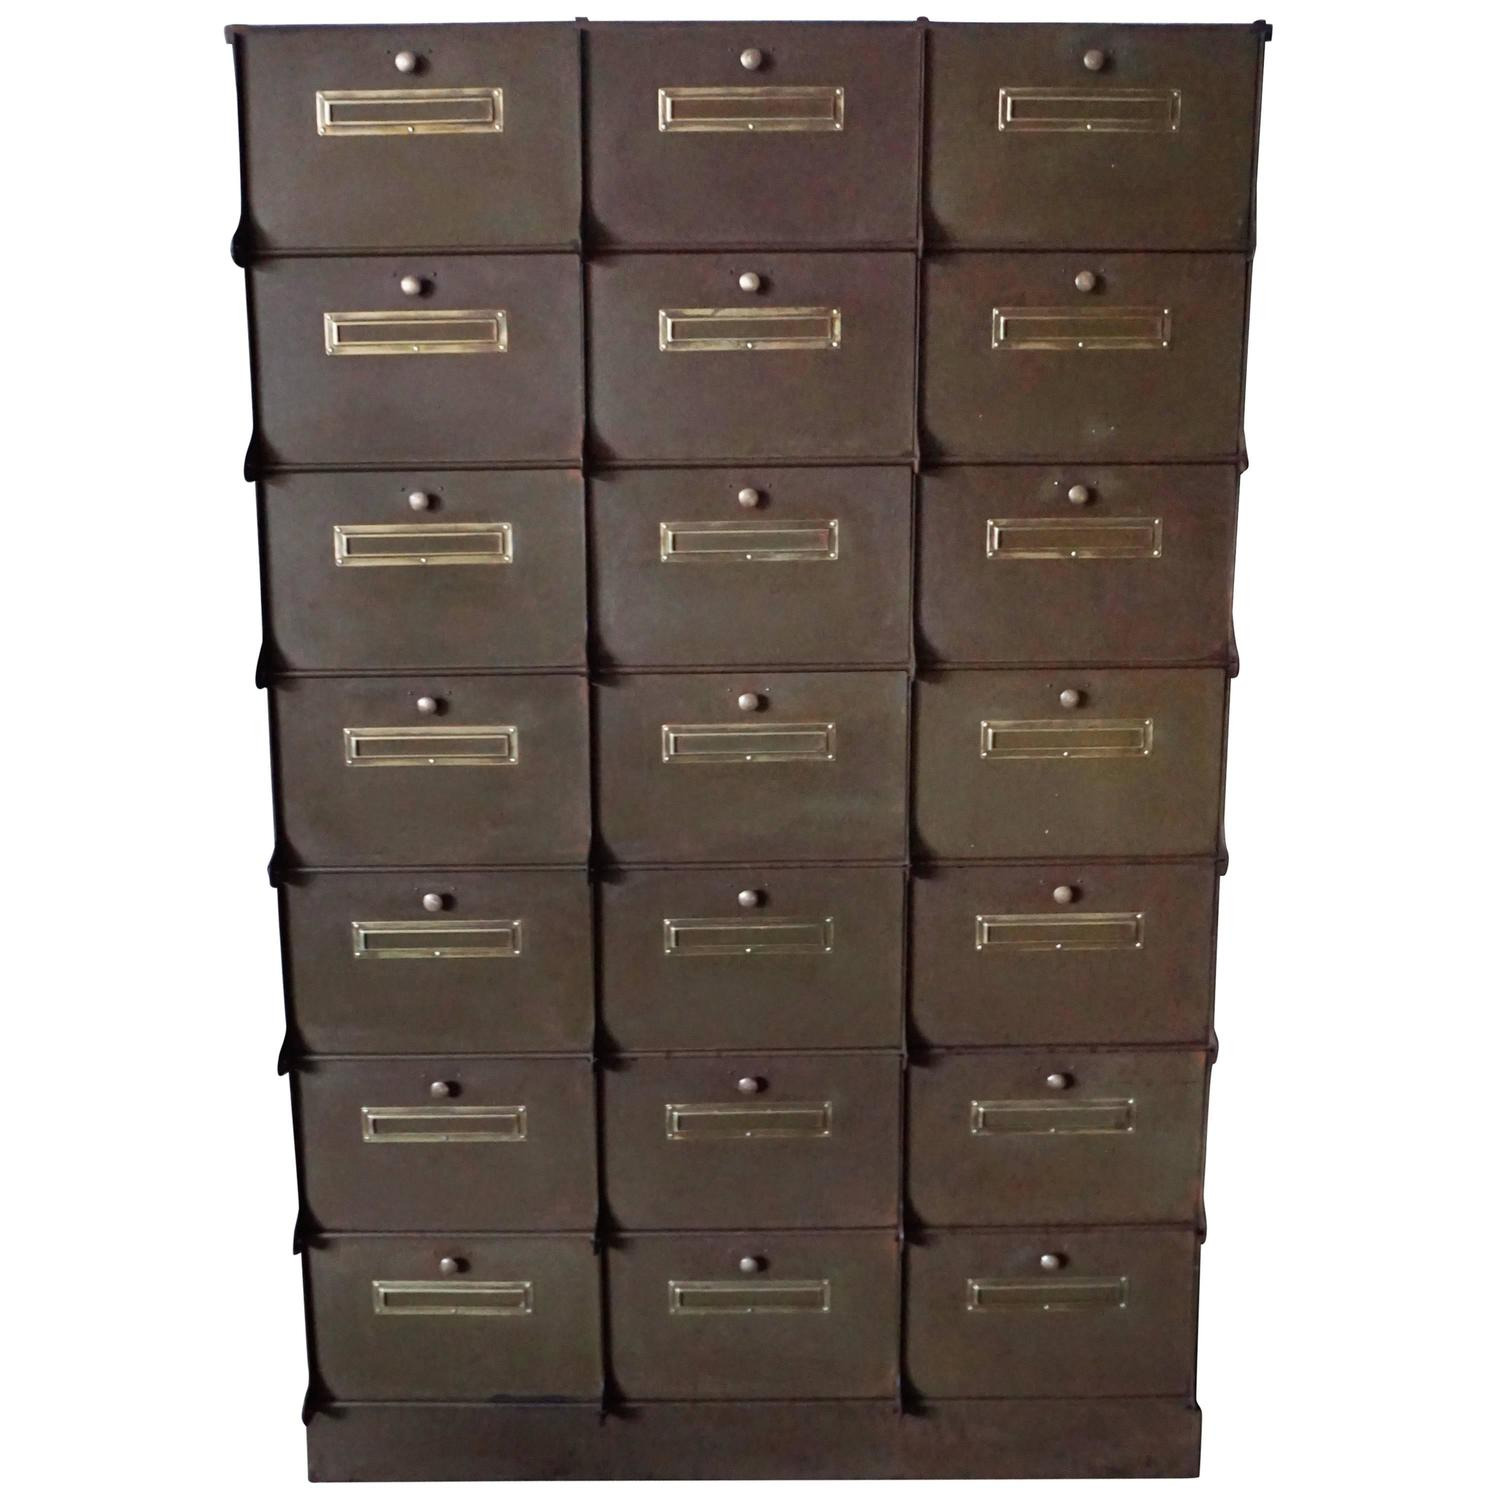 Delicieux 1920s 1930s Industrial Filing Cabinet, Ribeauville, Belgium At 1stdibs